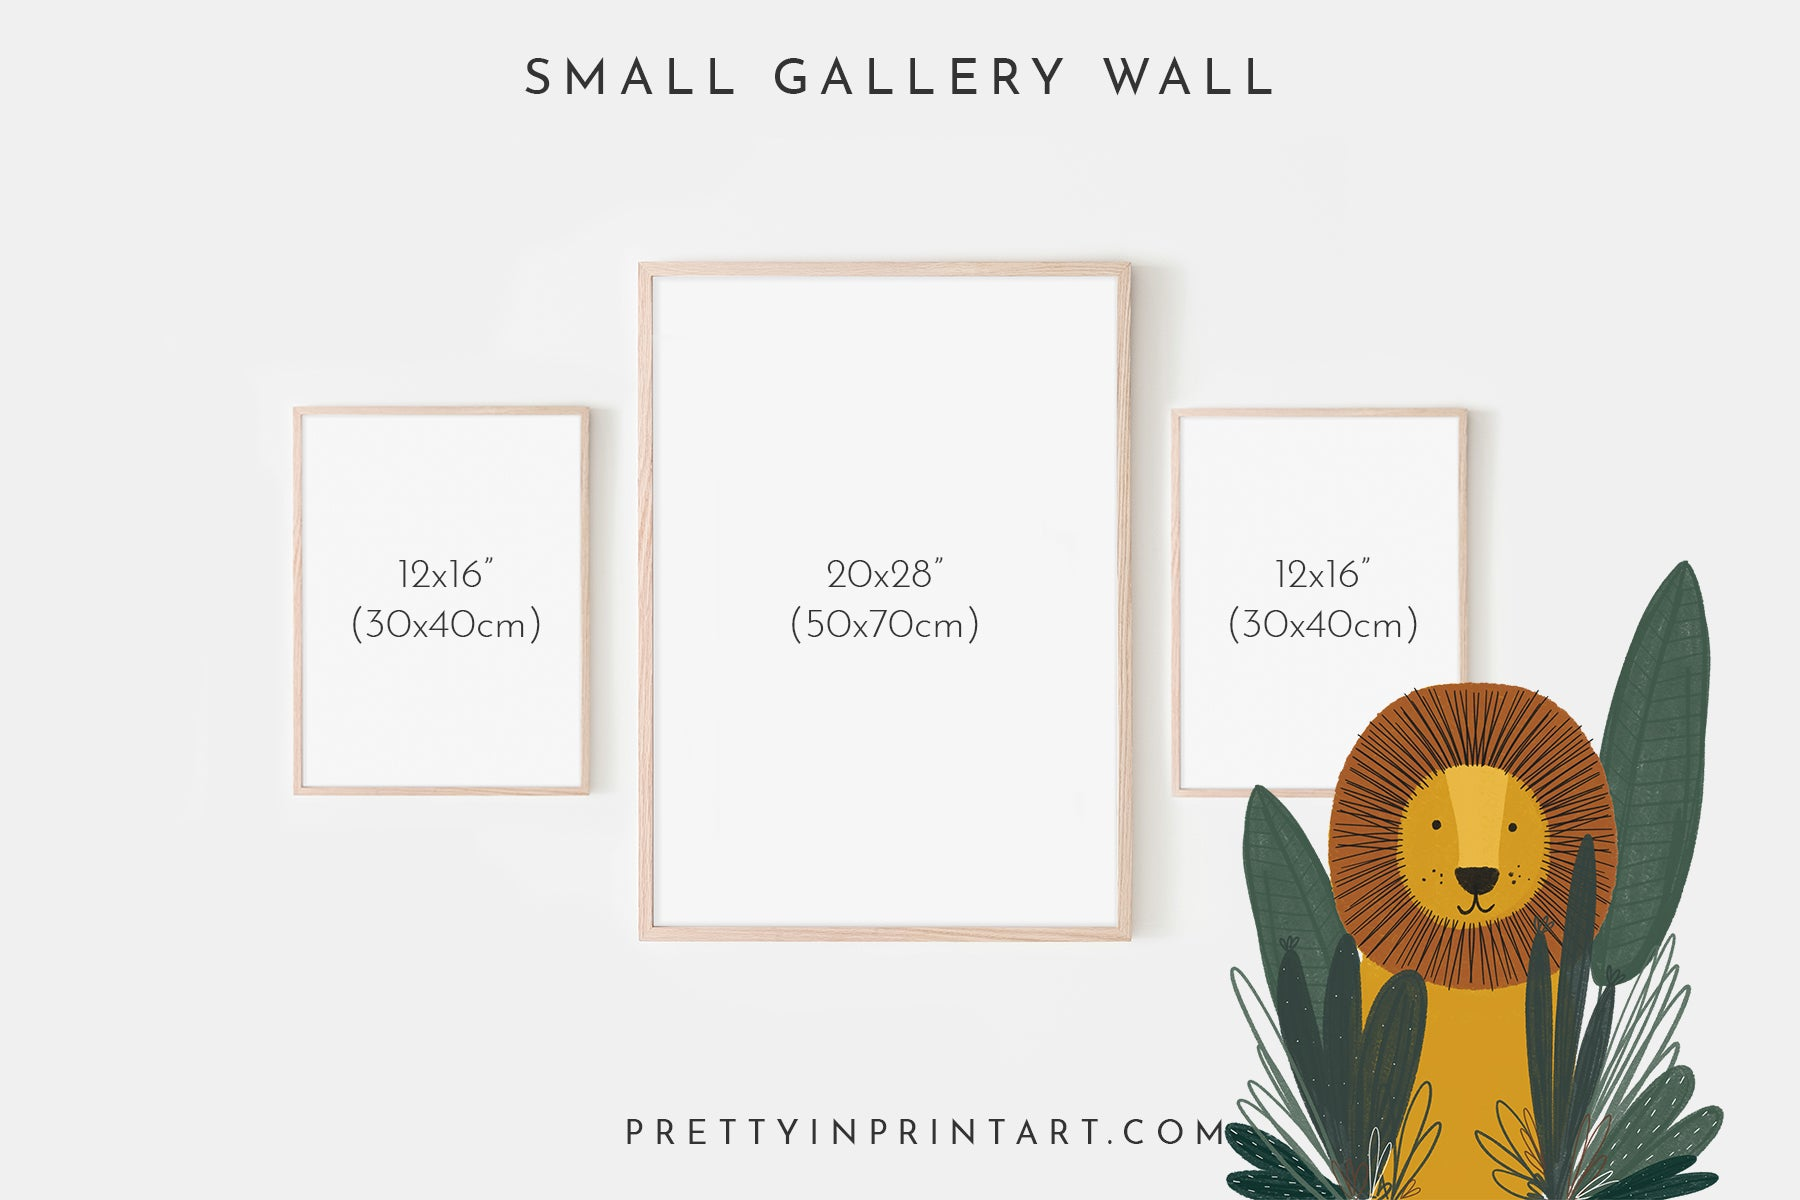 gallery-wall-template-ideas-nursery-decor-how-to-hang-art-kids-wall-art-poster-wall